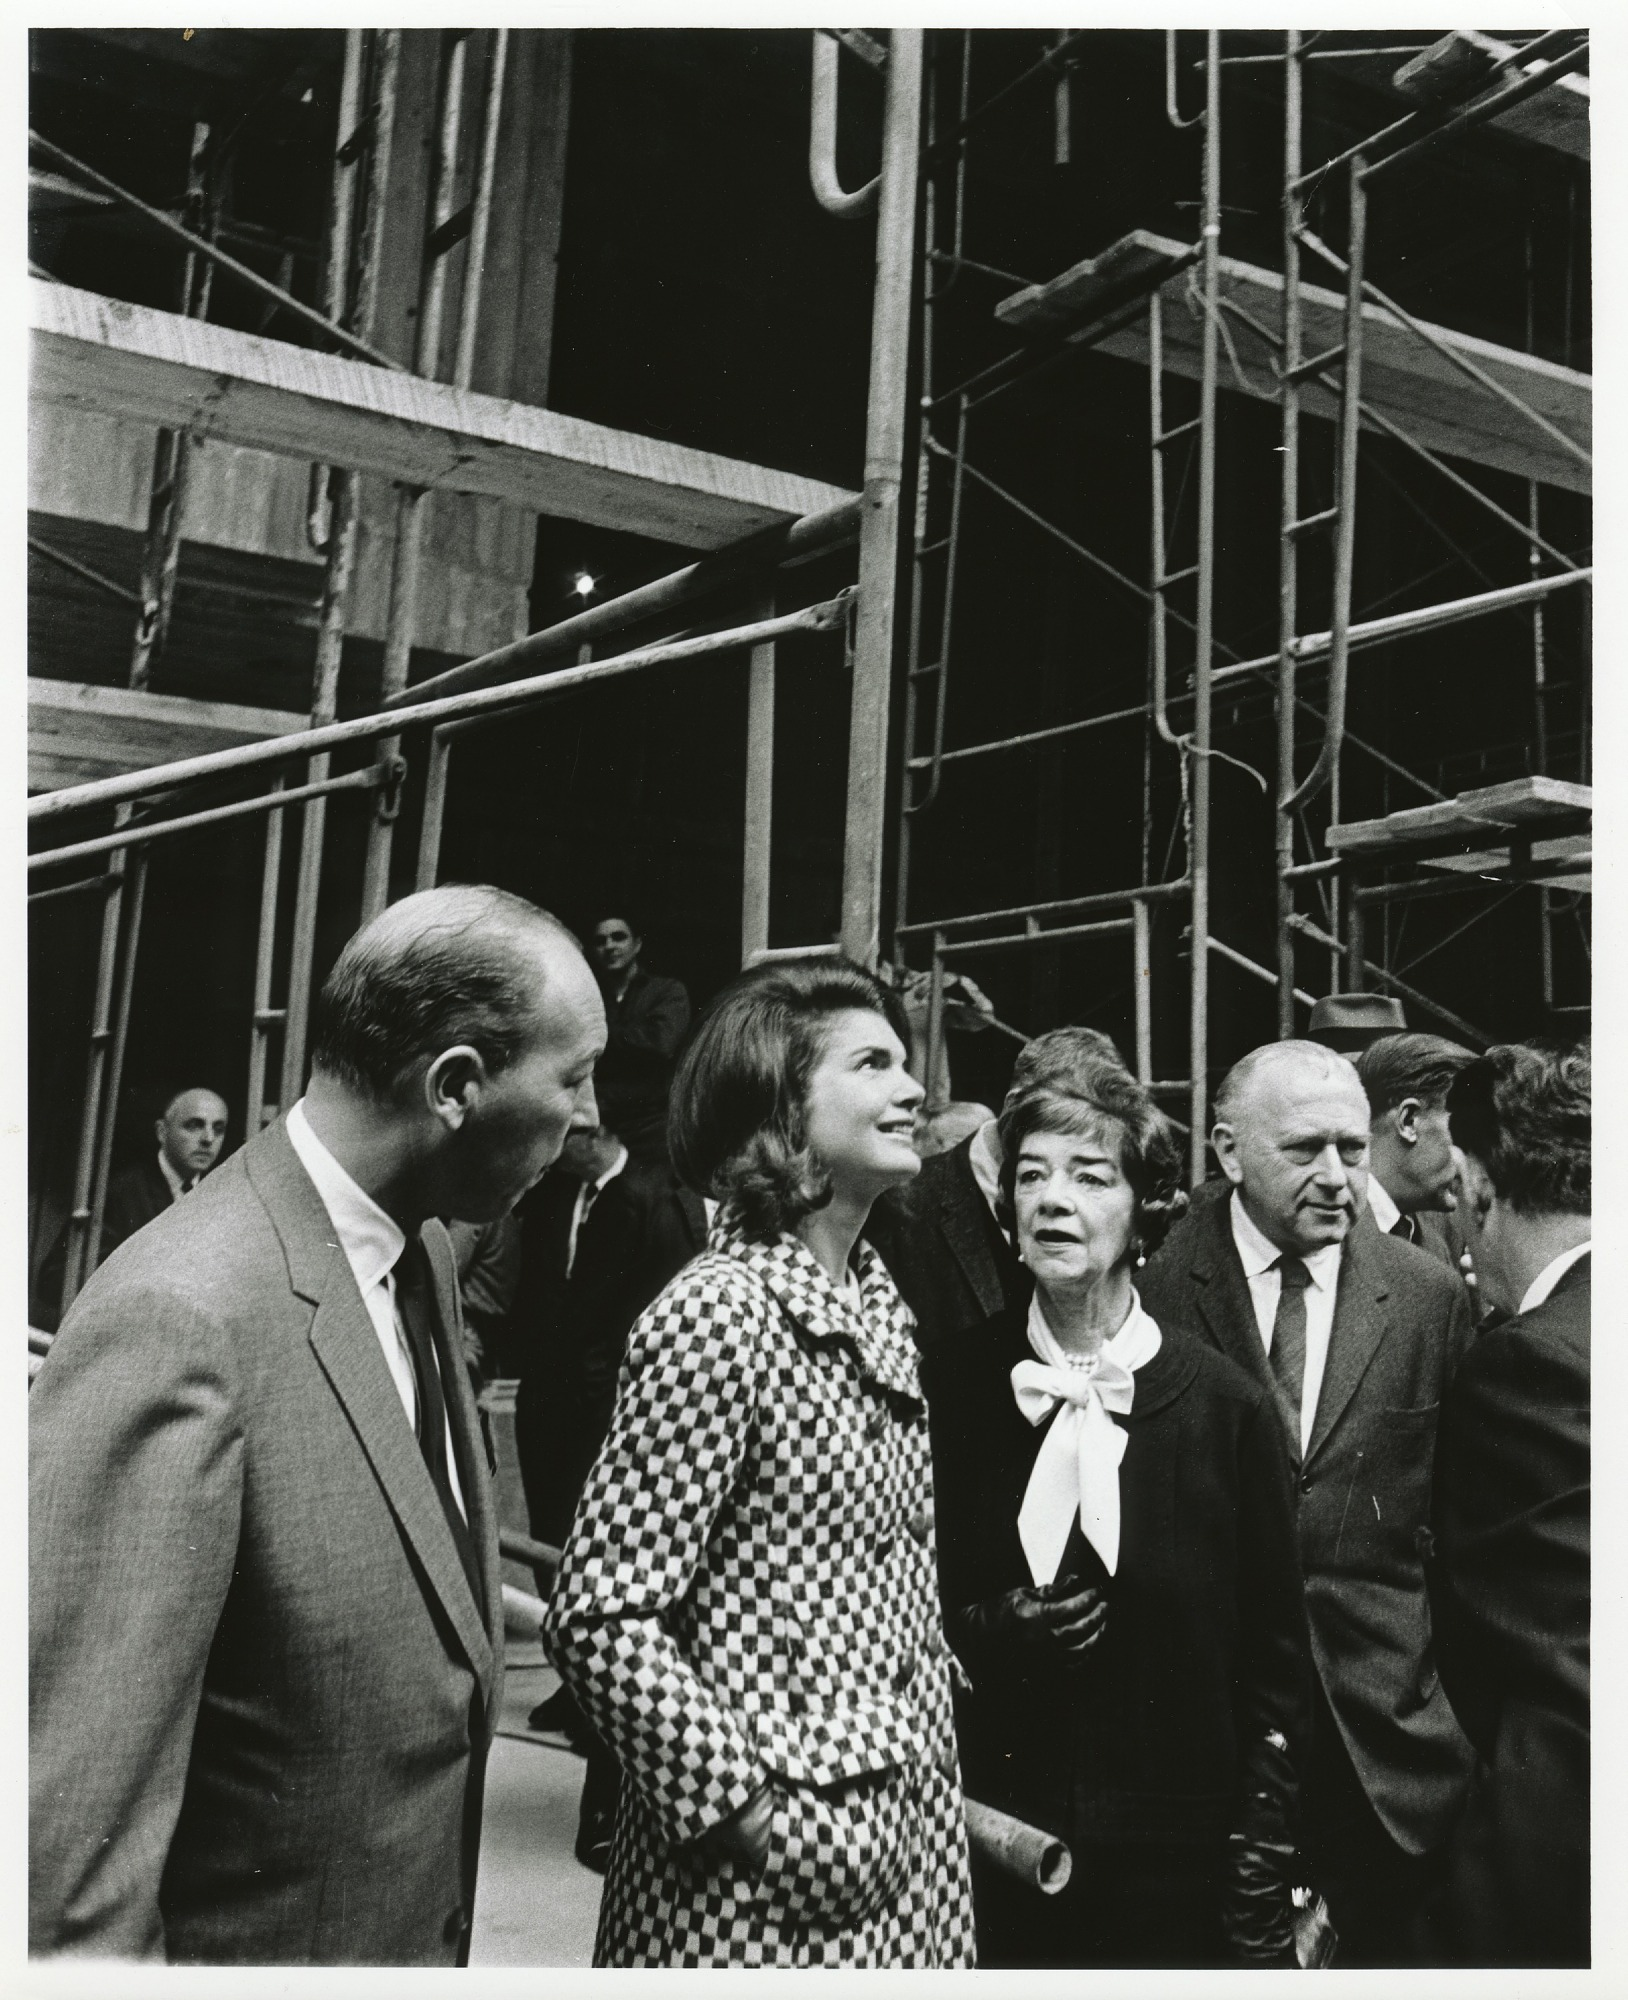 images for Marcel Breuer and Jacqueline Kennedy touring the construction of the Whitney Museum of American Art